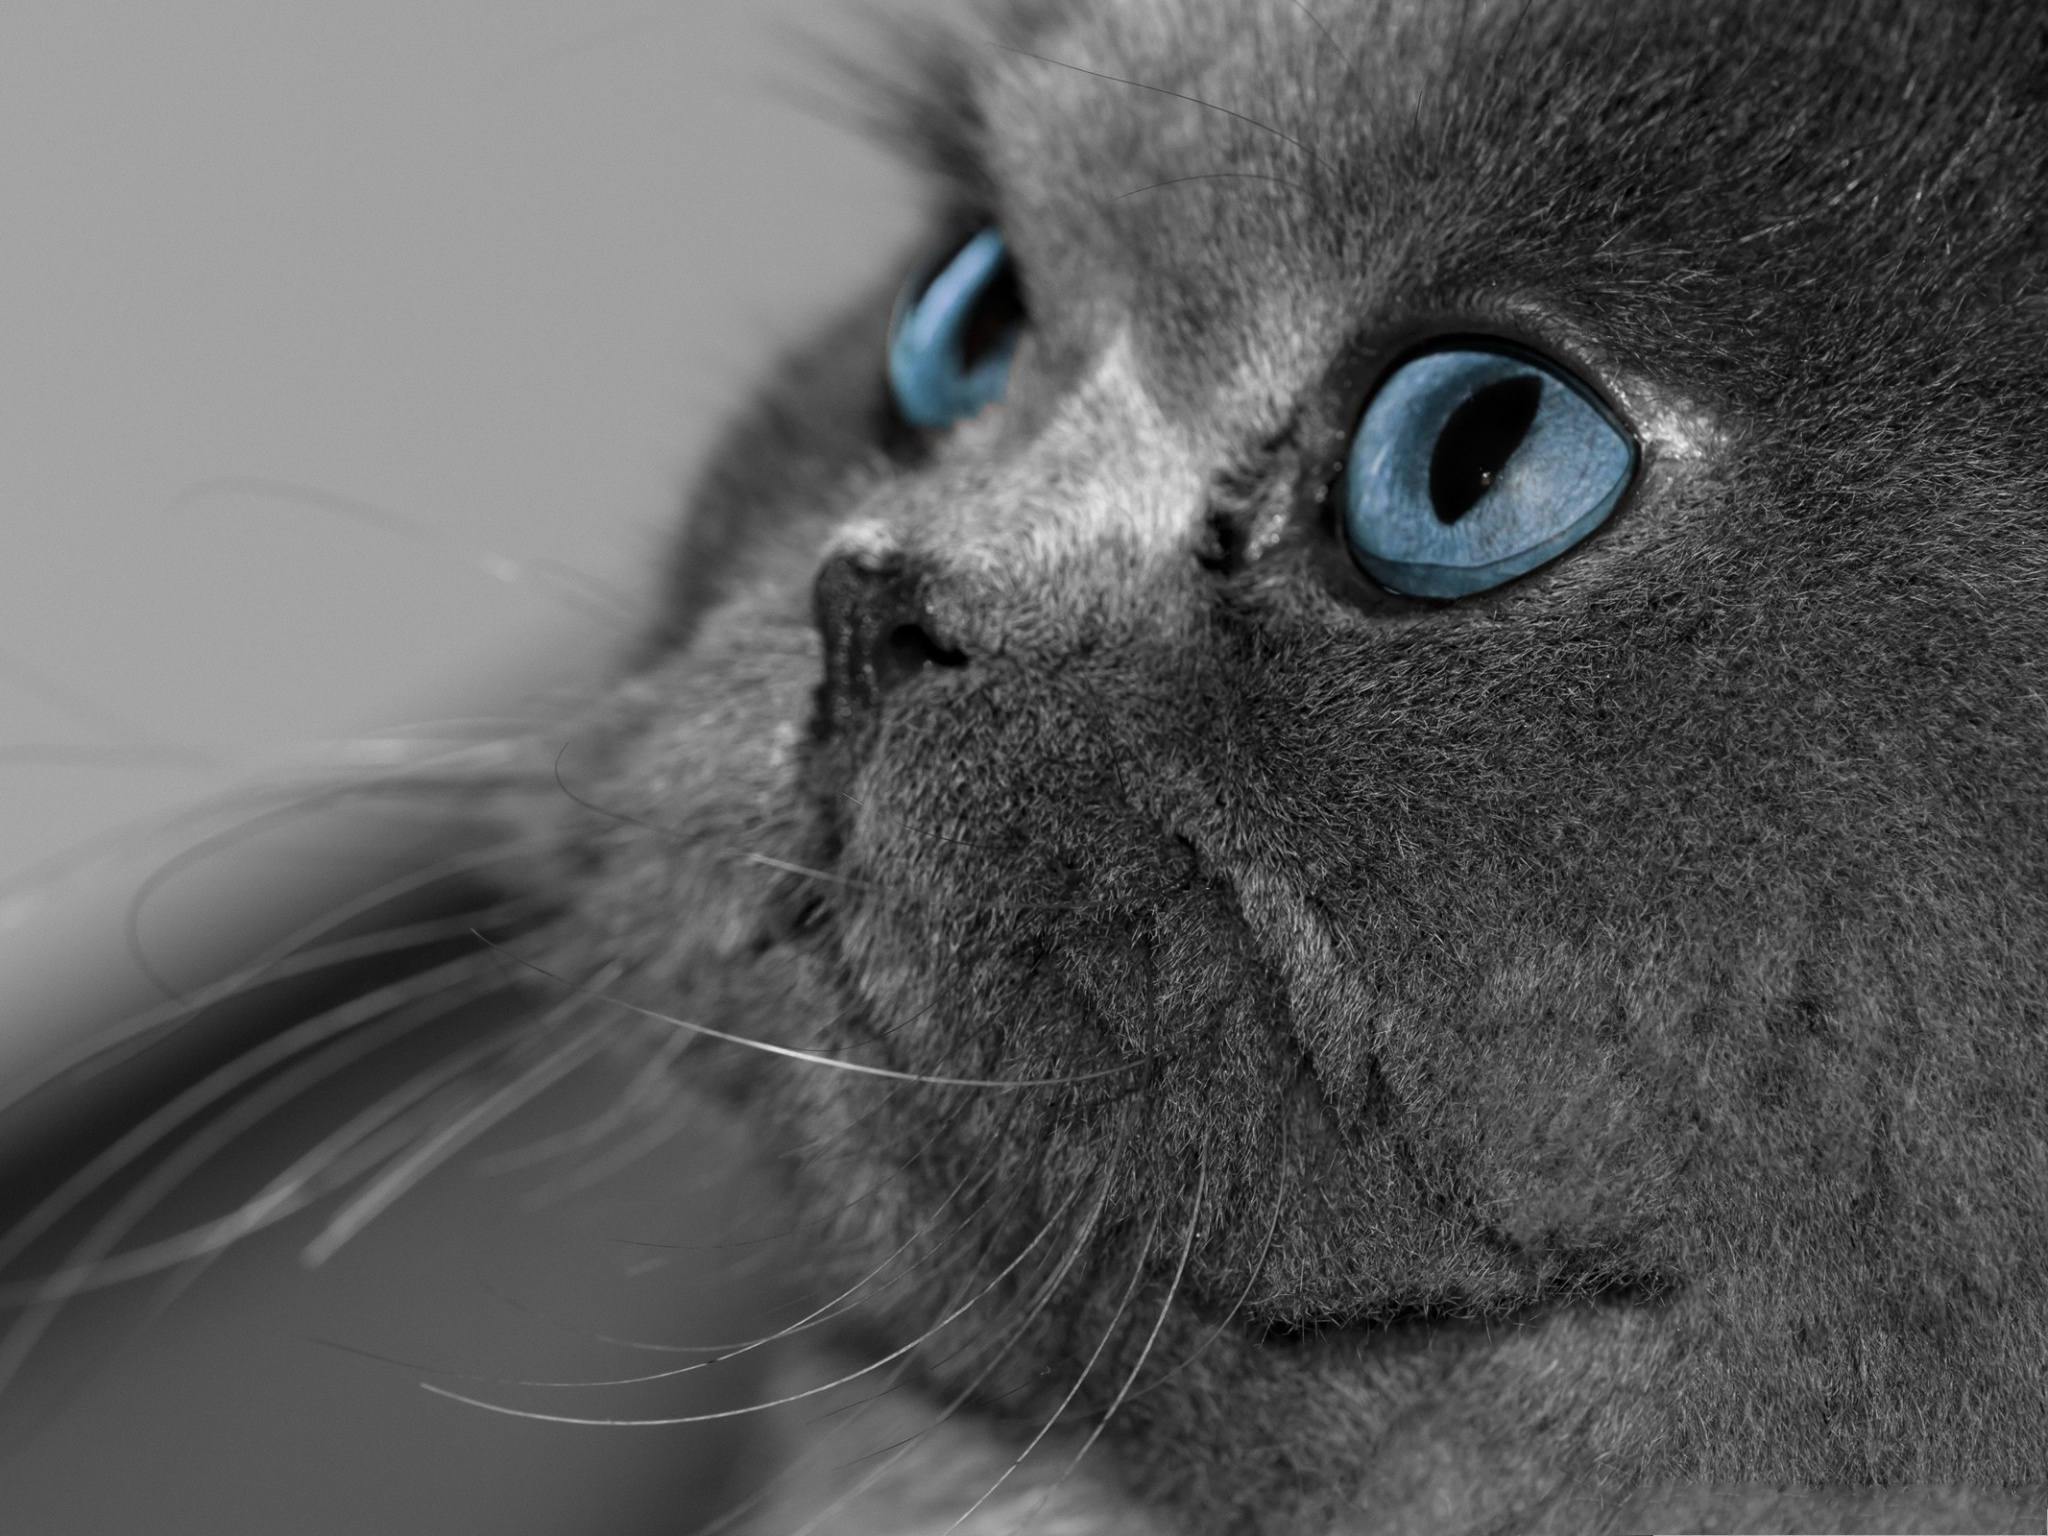 click to free download the wallpaper--Cute Cat Photos, Blue Eyed Cat in Gray Fur, Beard Being Pulled? 2048X1536 free wallpaper download